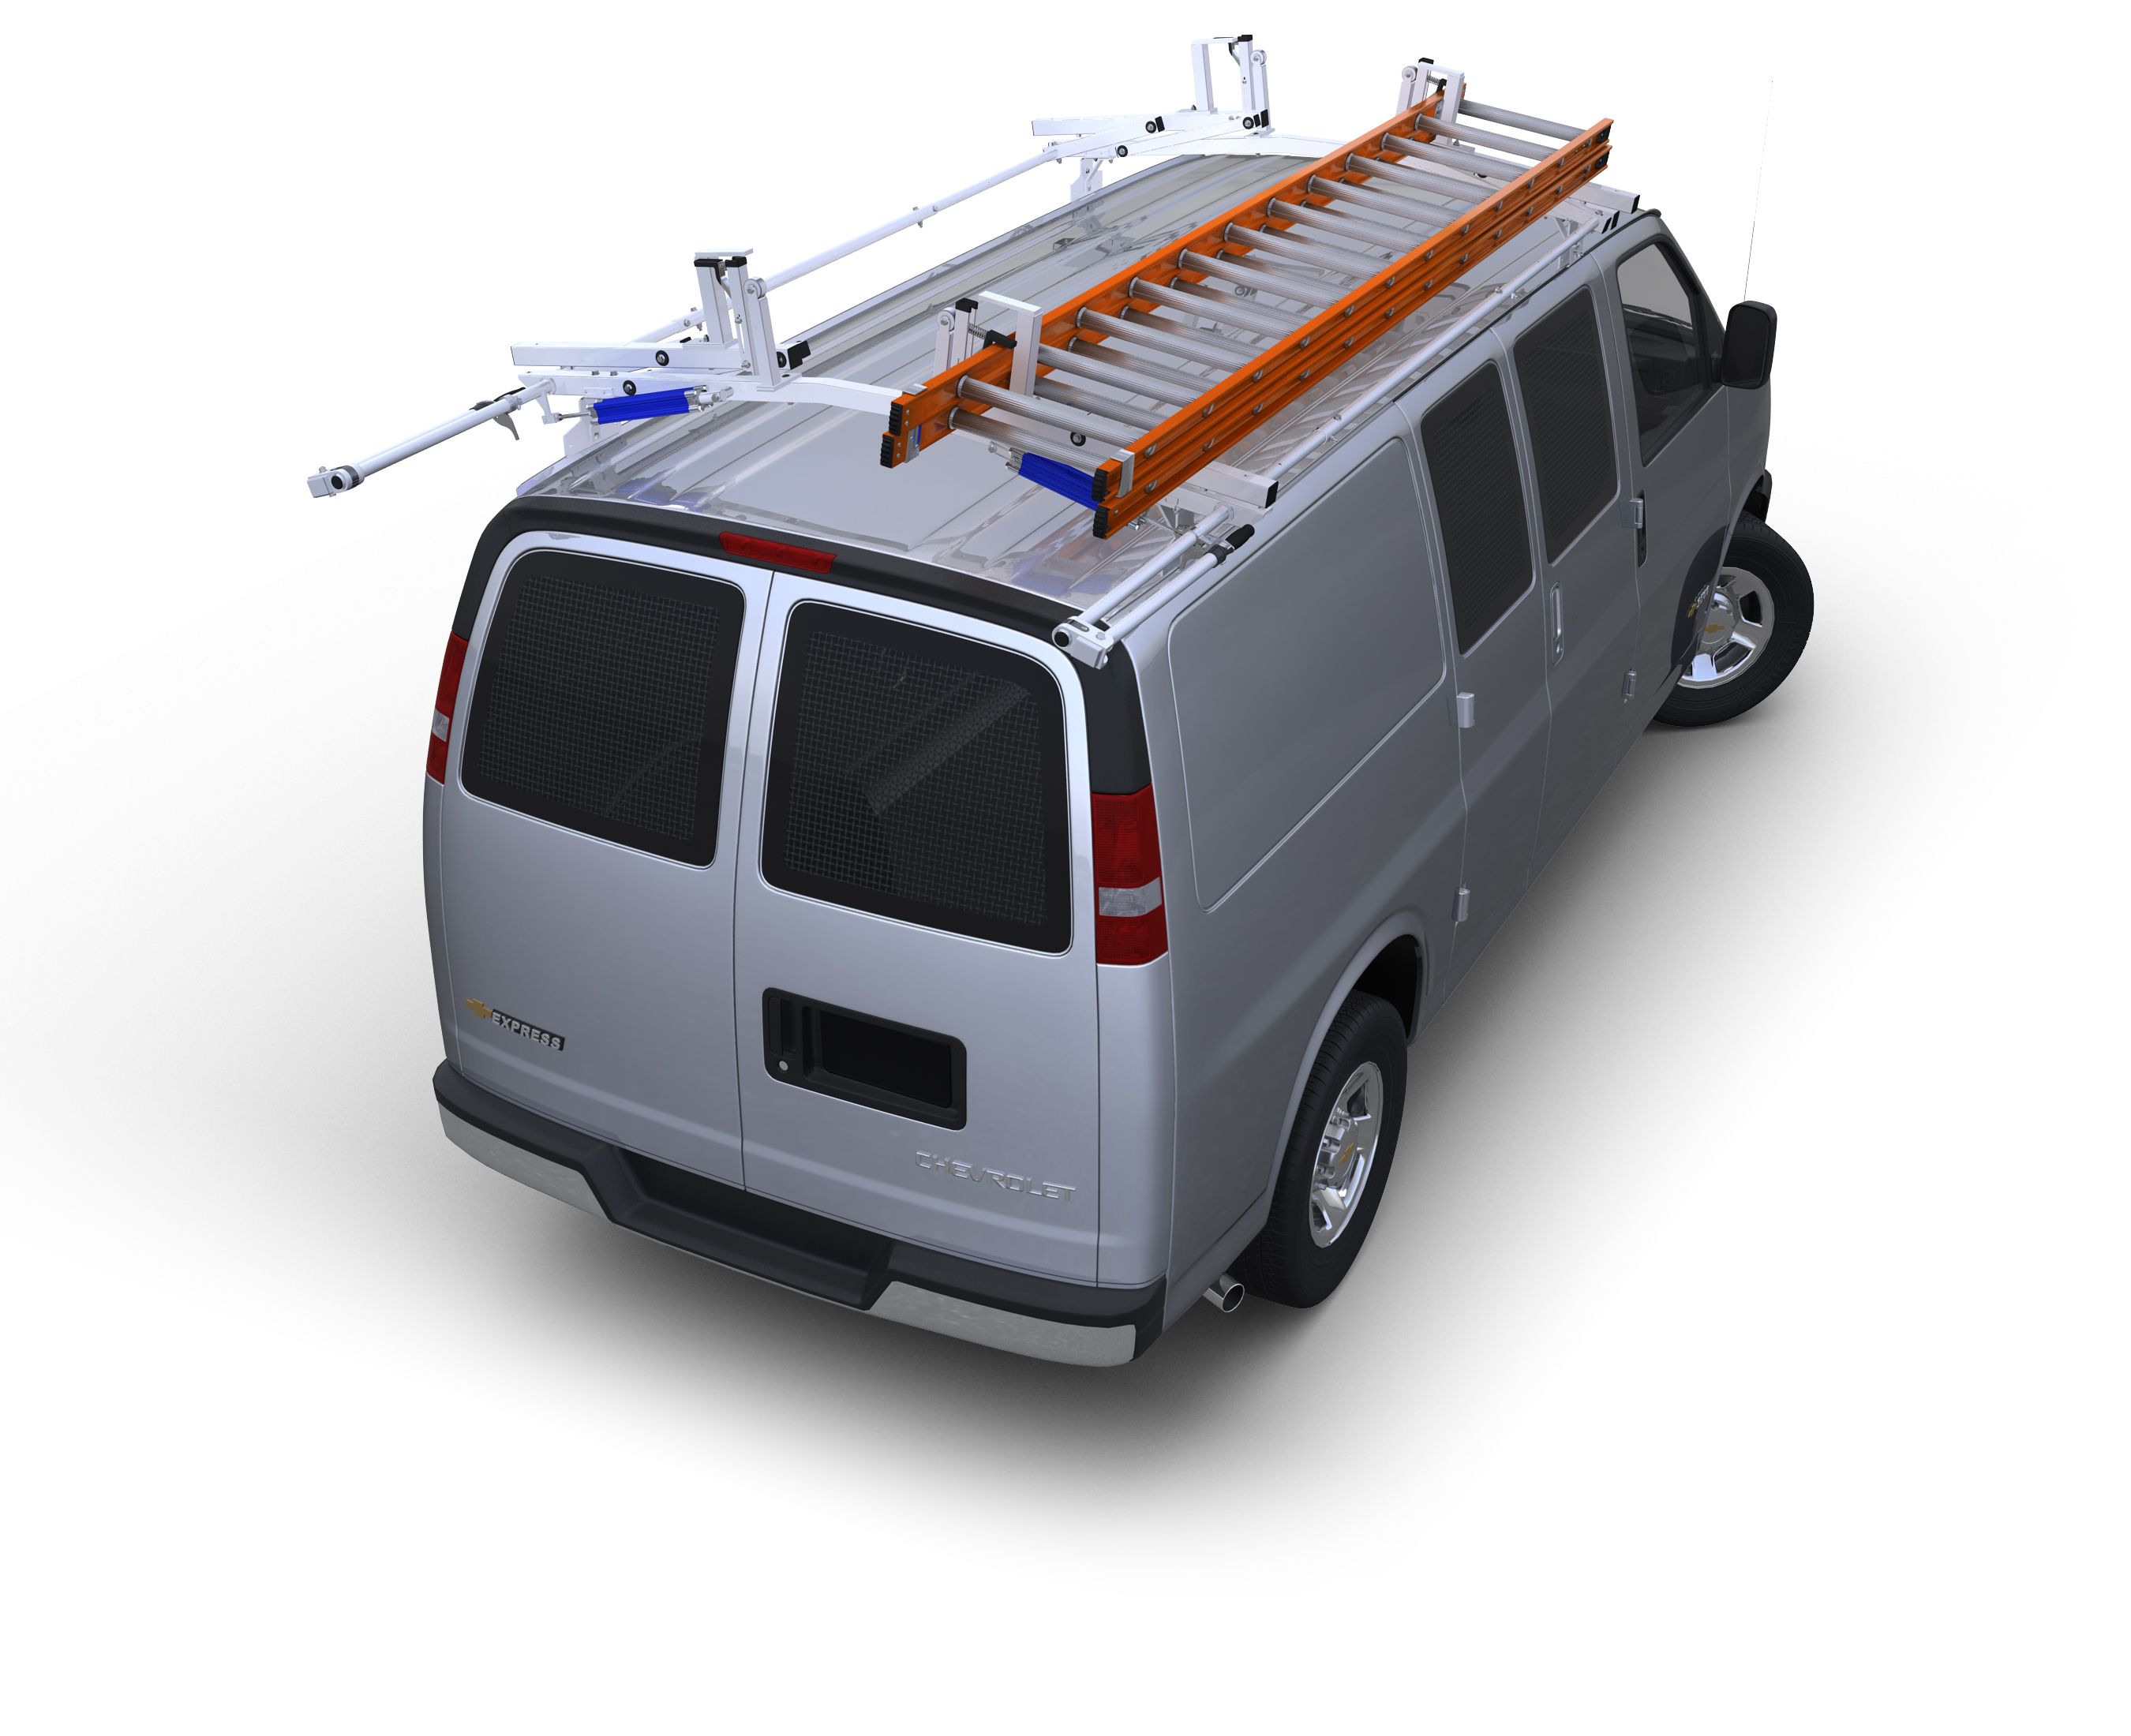 Maxi-Stor Bin System for High Roof Vans - American Van